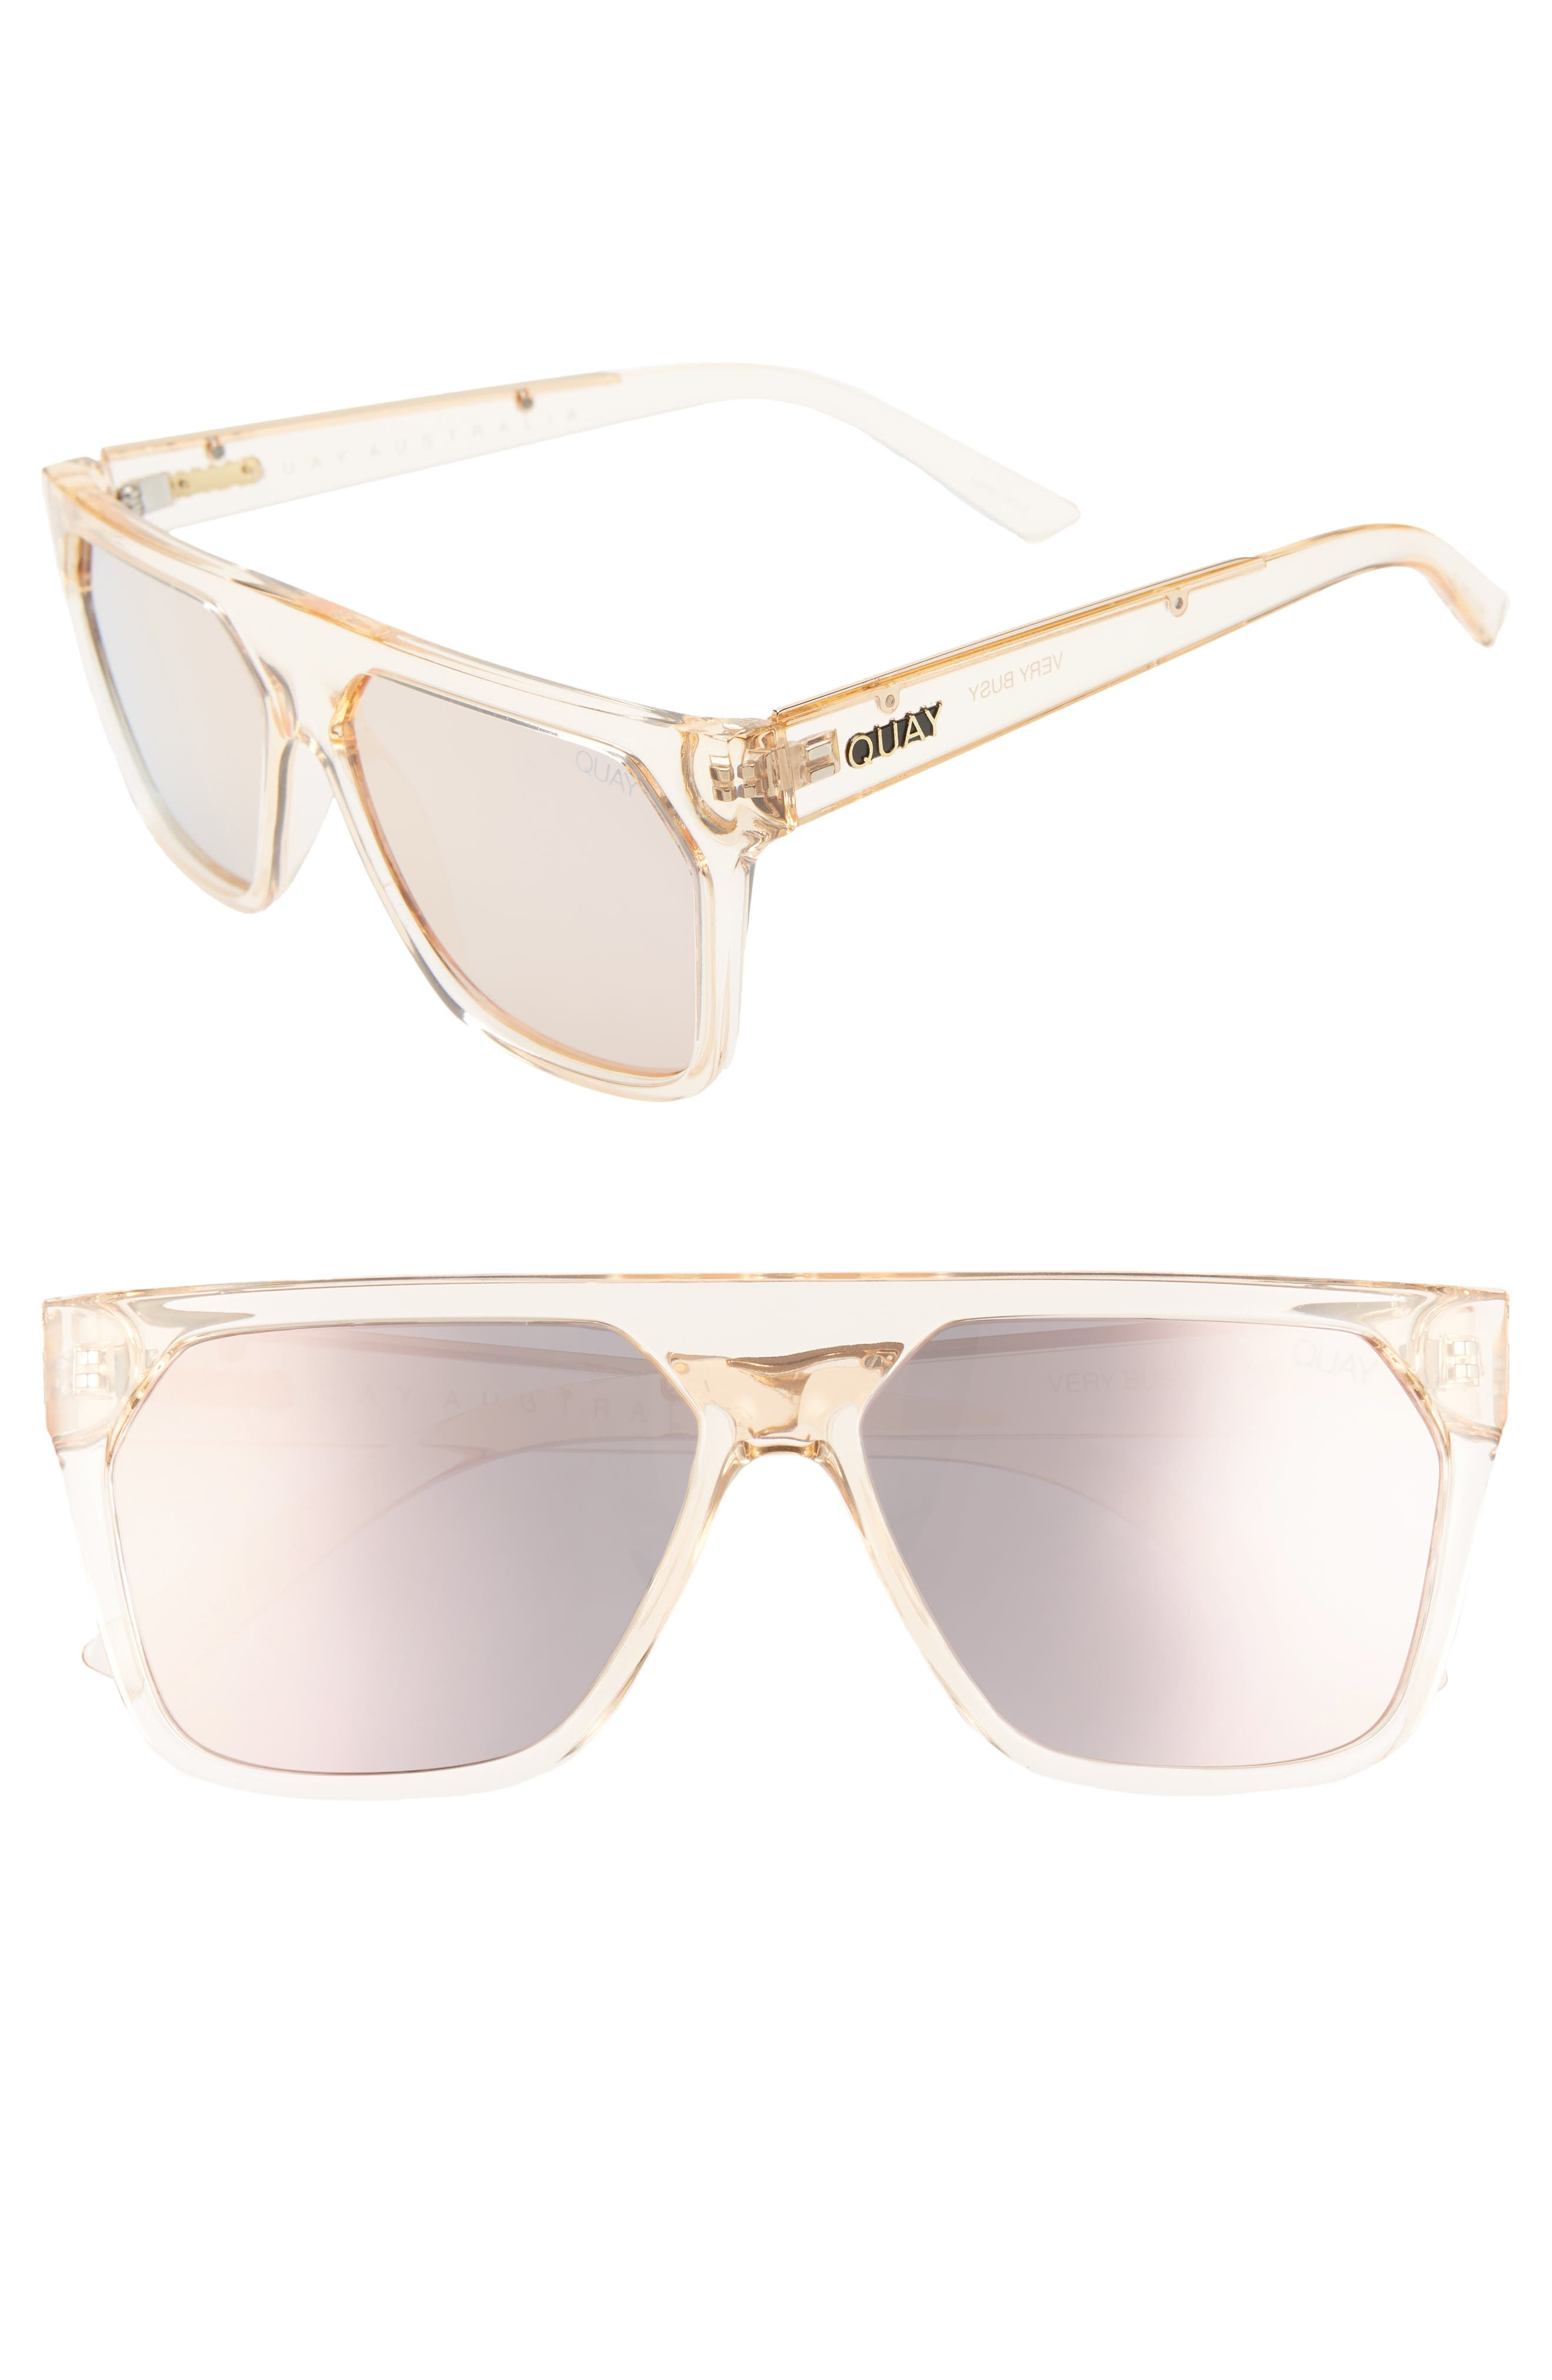 QUAY AUSTRALIA, x Jaclyn Hill Very Busy 58mm Shield Sunglasses, Main thumbnail 1, color, CHAMPAGNE / ROSE